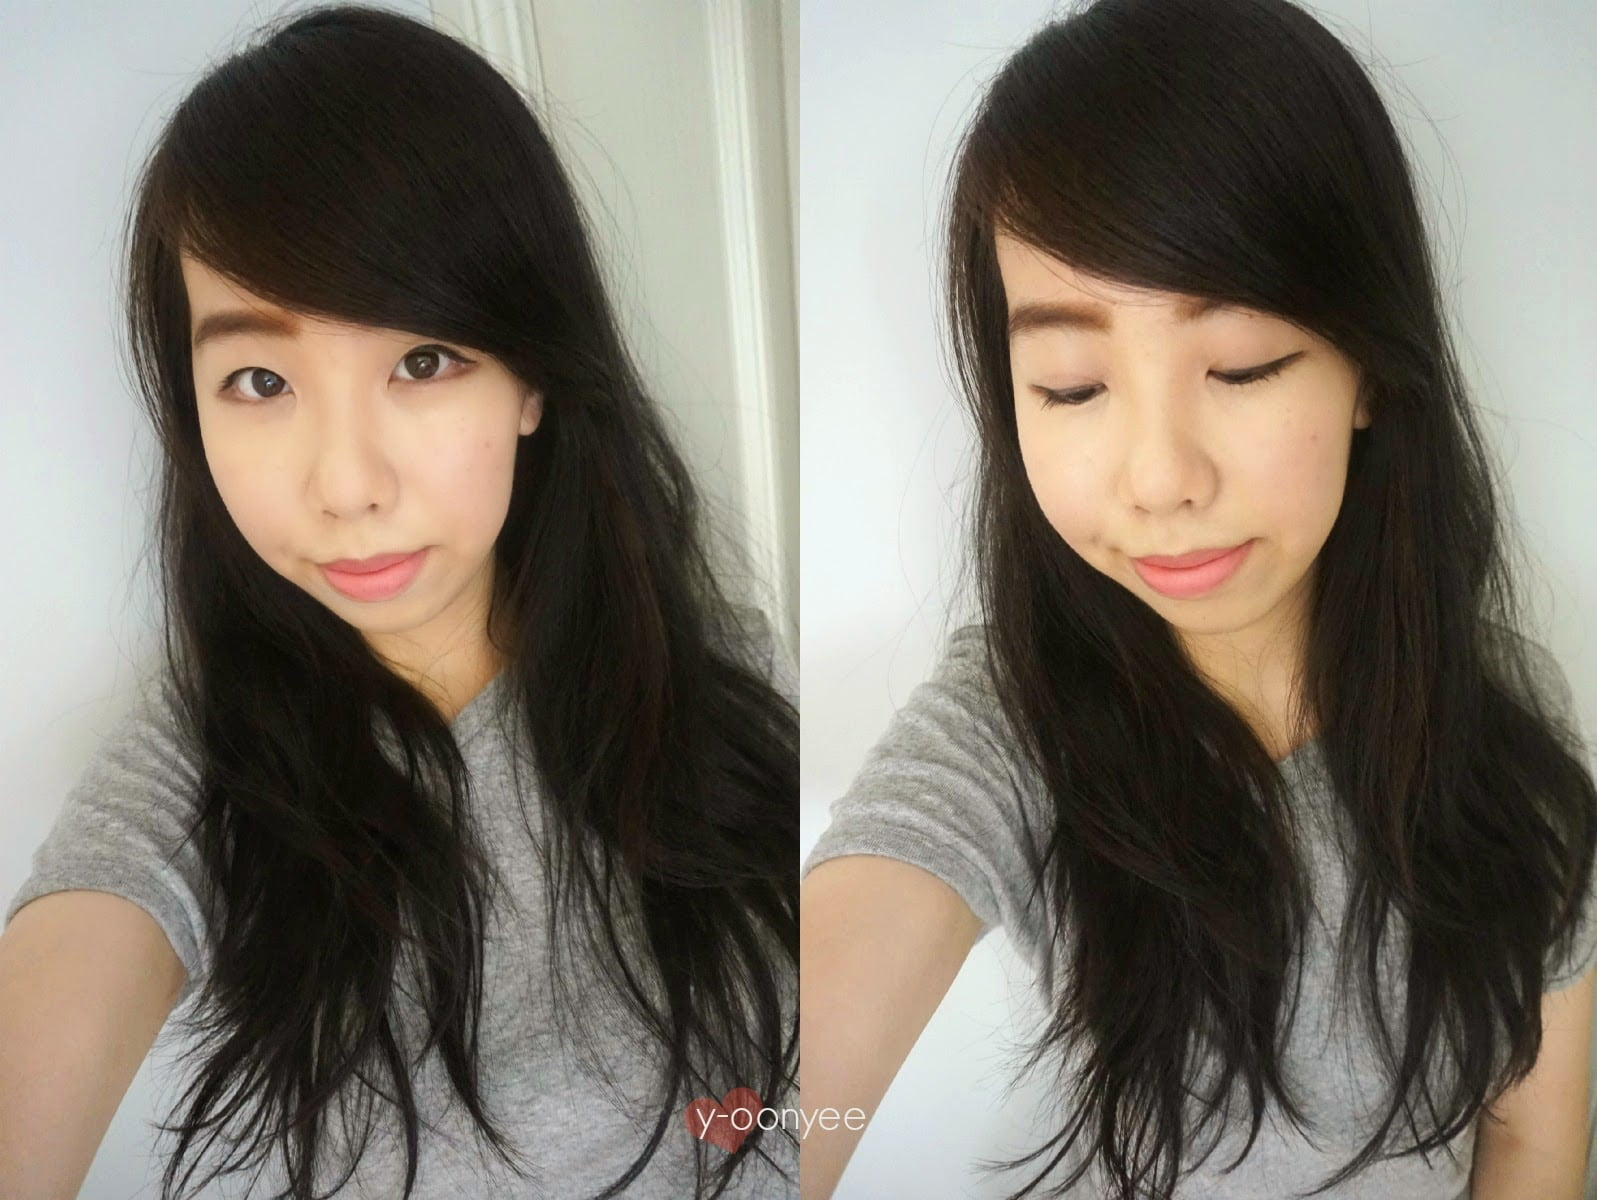 Girl wearing Korean makeup